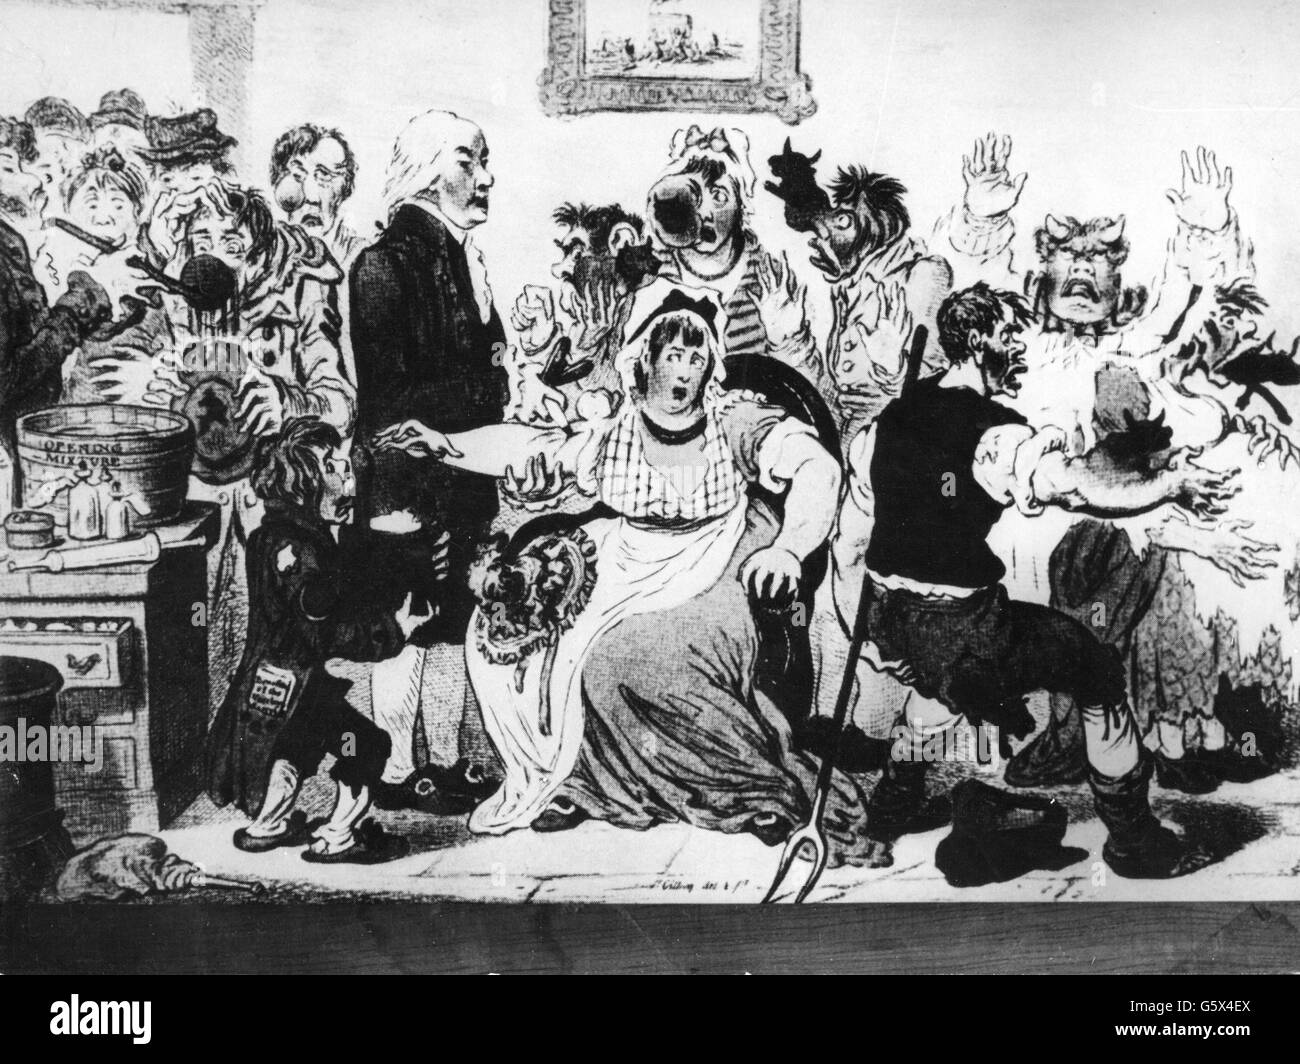 Jenner, Edward, 17.5.1759 - 26.1.1823, English medic / physician, half length, executing smallpox vaccination developed - Stock Image